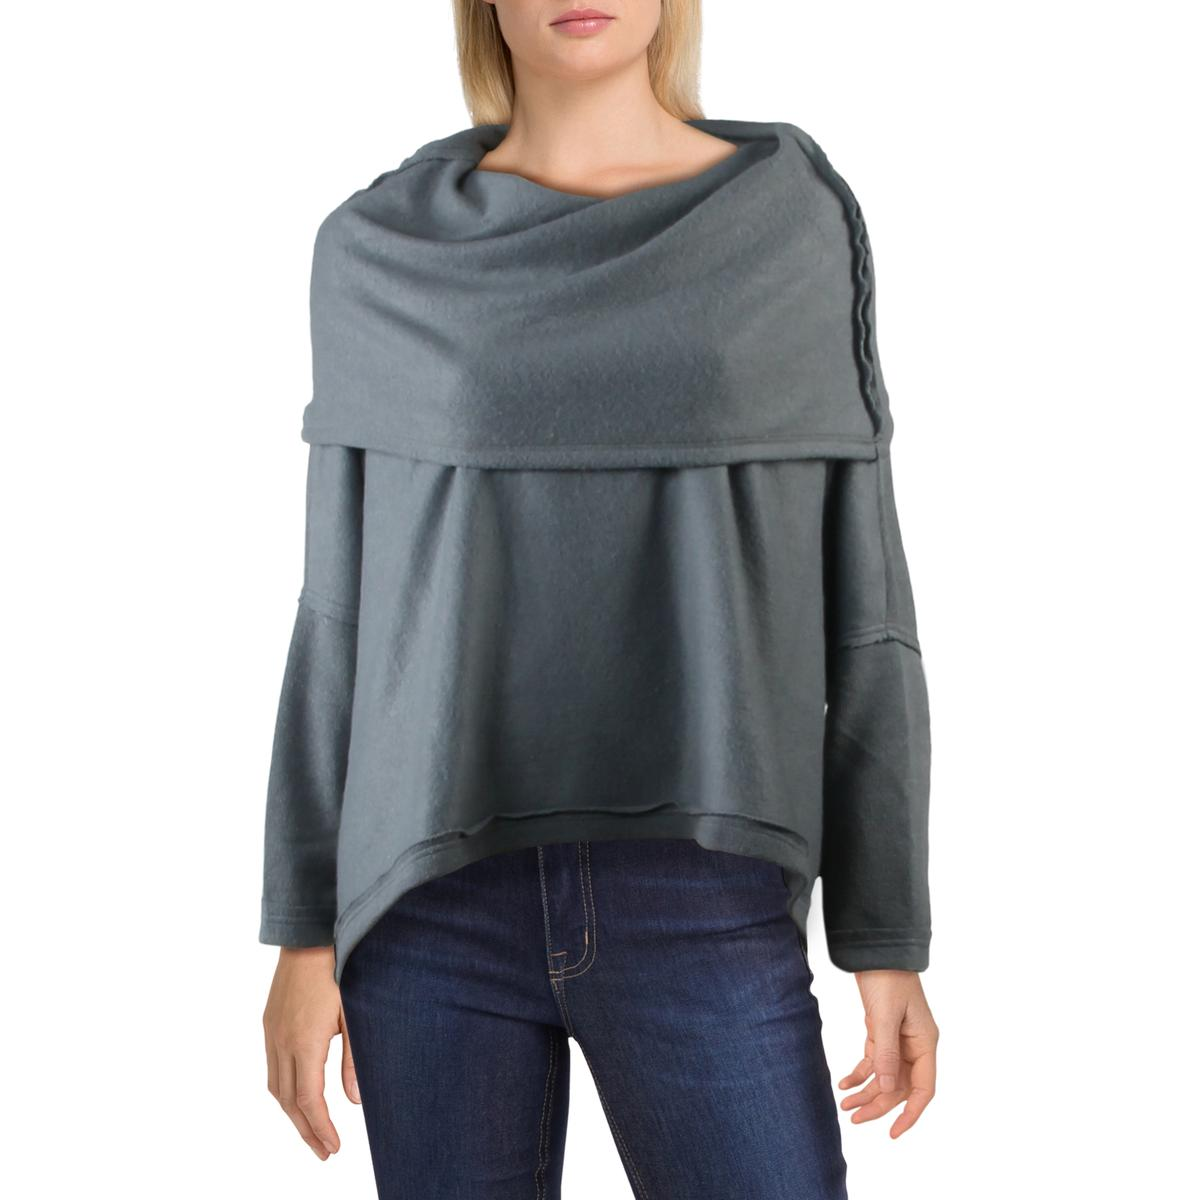 Eileen Fisher Womens Wool Colorblock Crewneck Pullover Sweater Top BHFO 1226